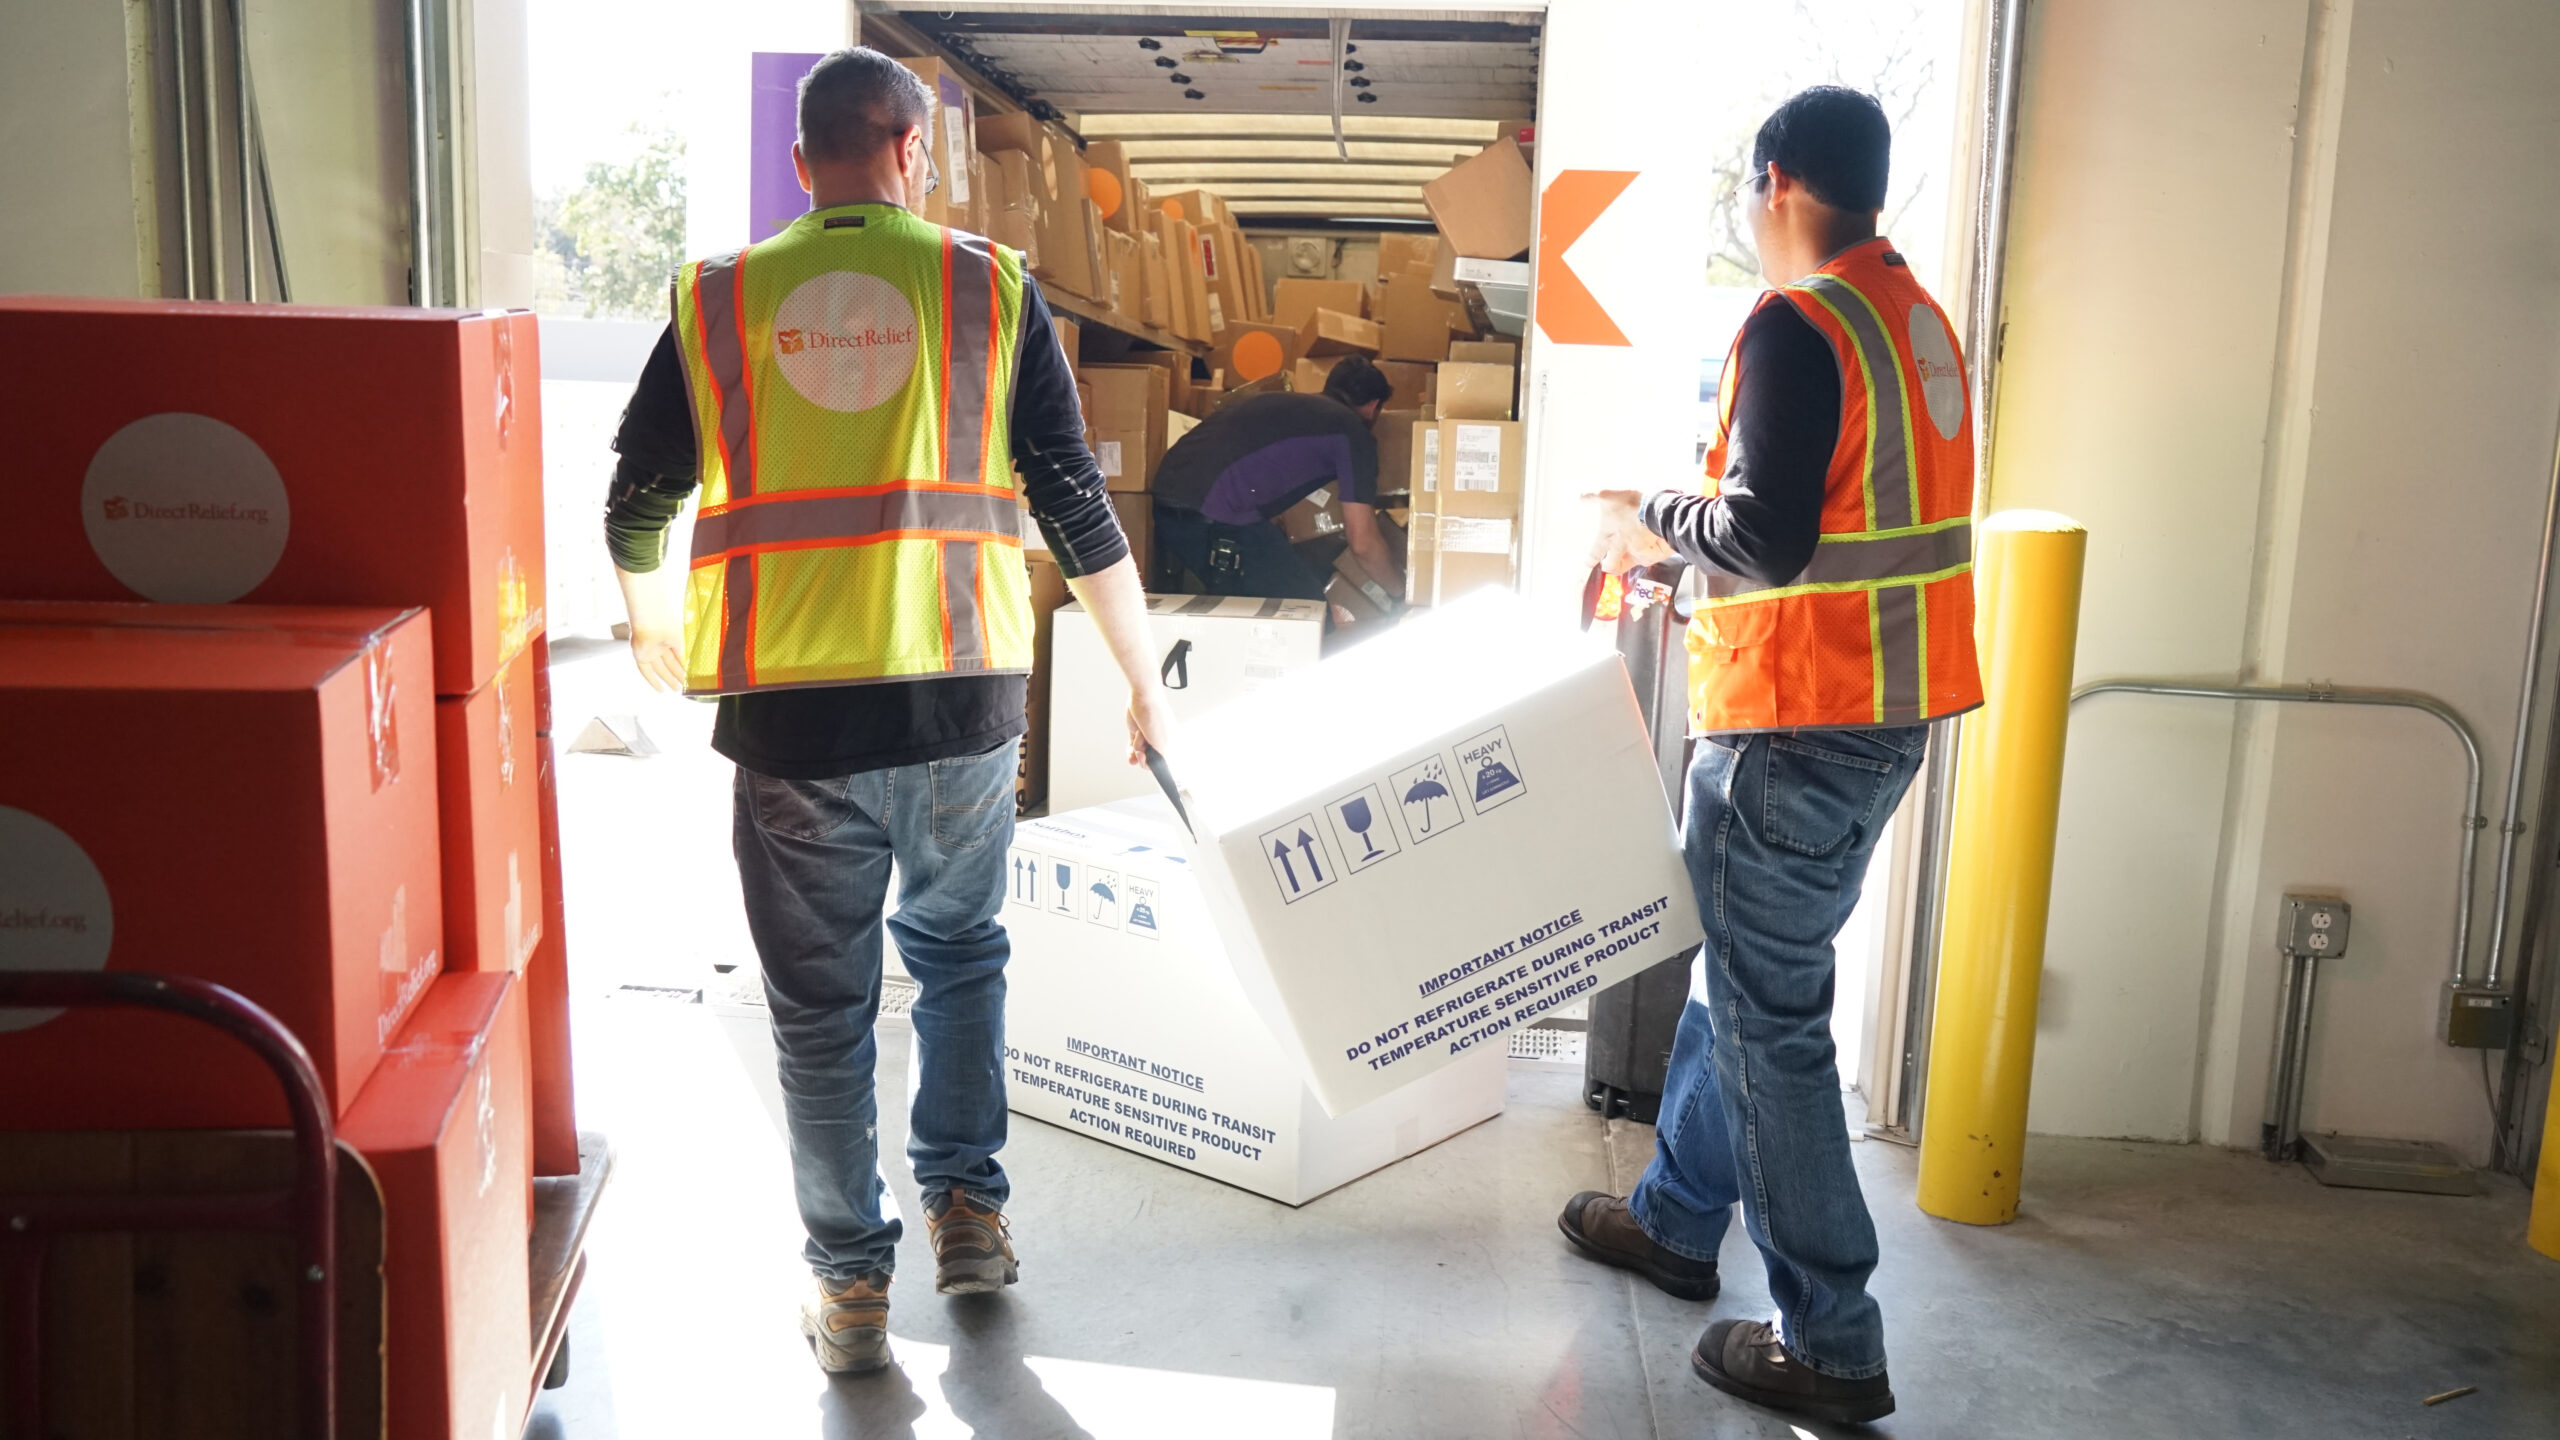 Shipments of temperature sensitive medication depart Direct Relief's warehouse for safety net health centers across the U.S. in 2019. Those health centers will be central to vaccine distribution to vulnerable communities in the coming months.(Lara Cooper/Direct Relief)